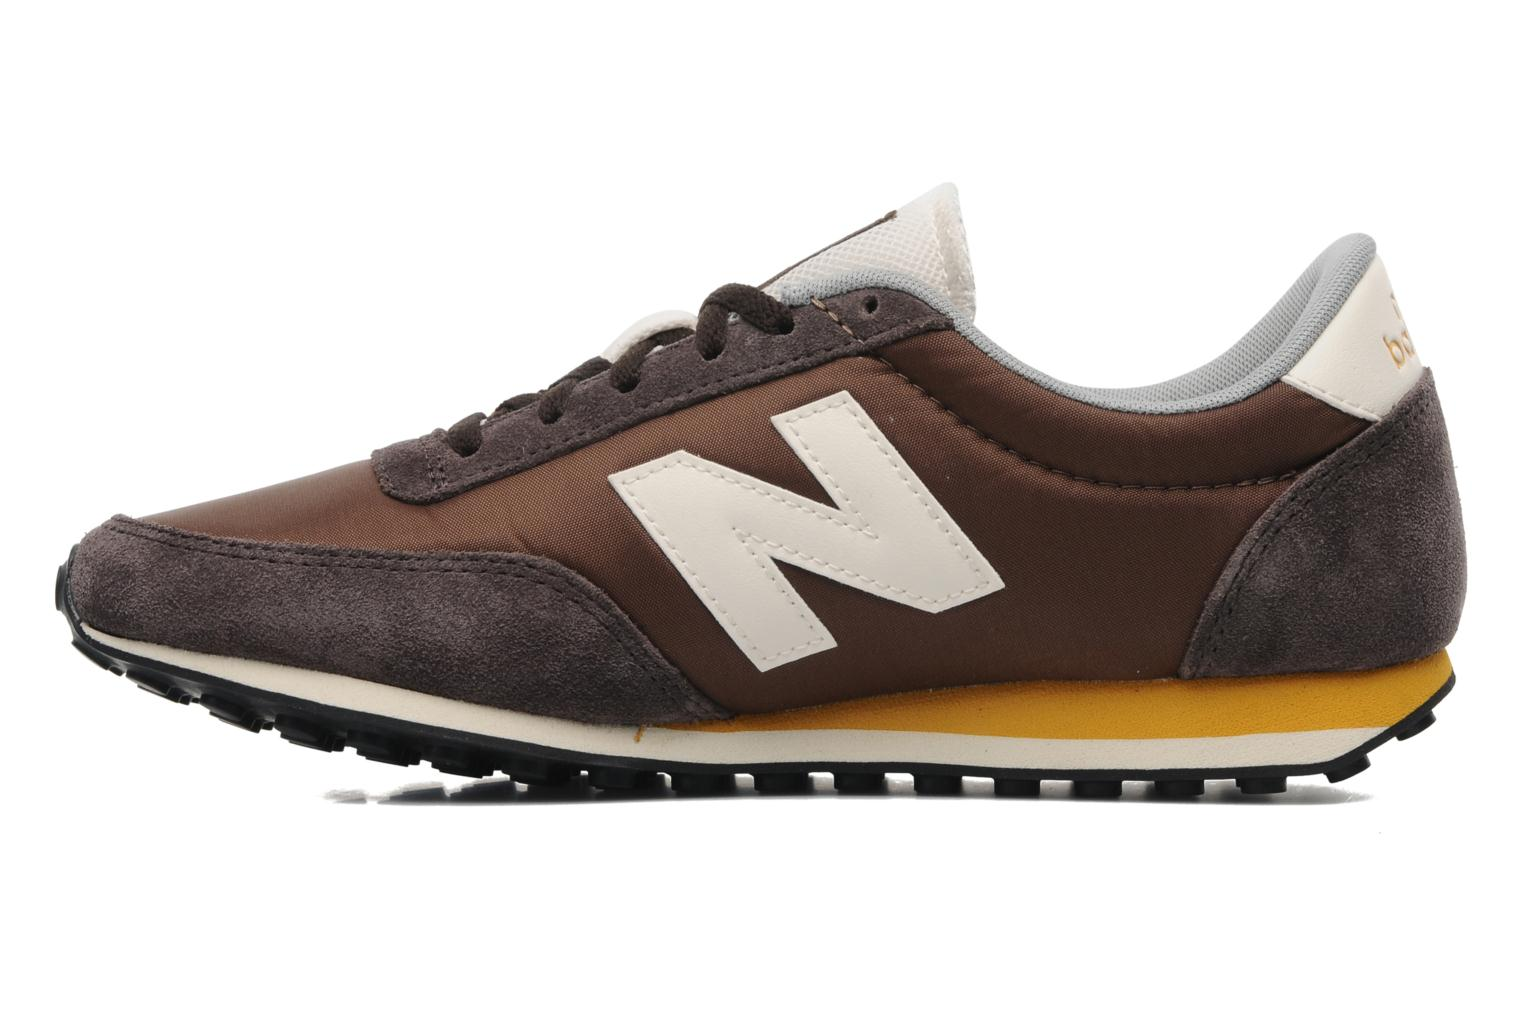 new balance u410 trainers in brown at 186059. Black Bedroom Furniture Sets. Home Design Ideas